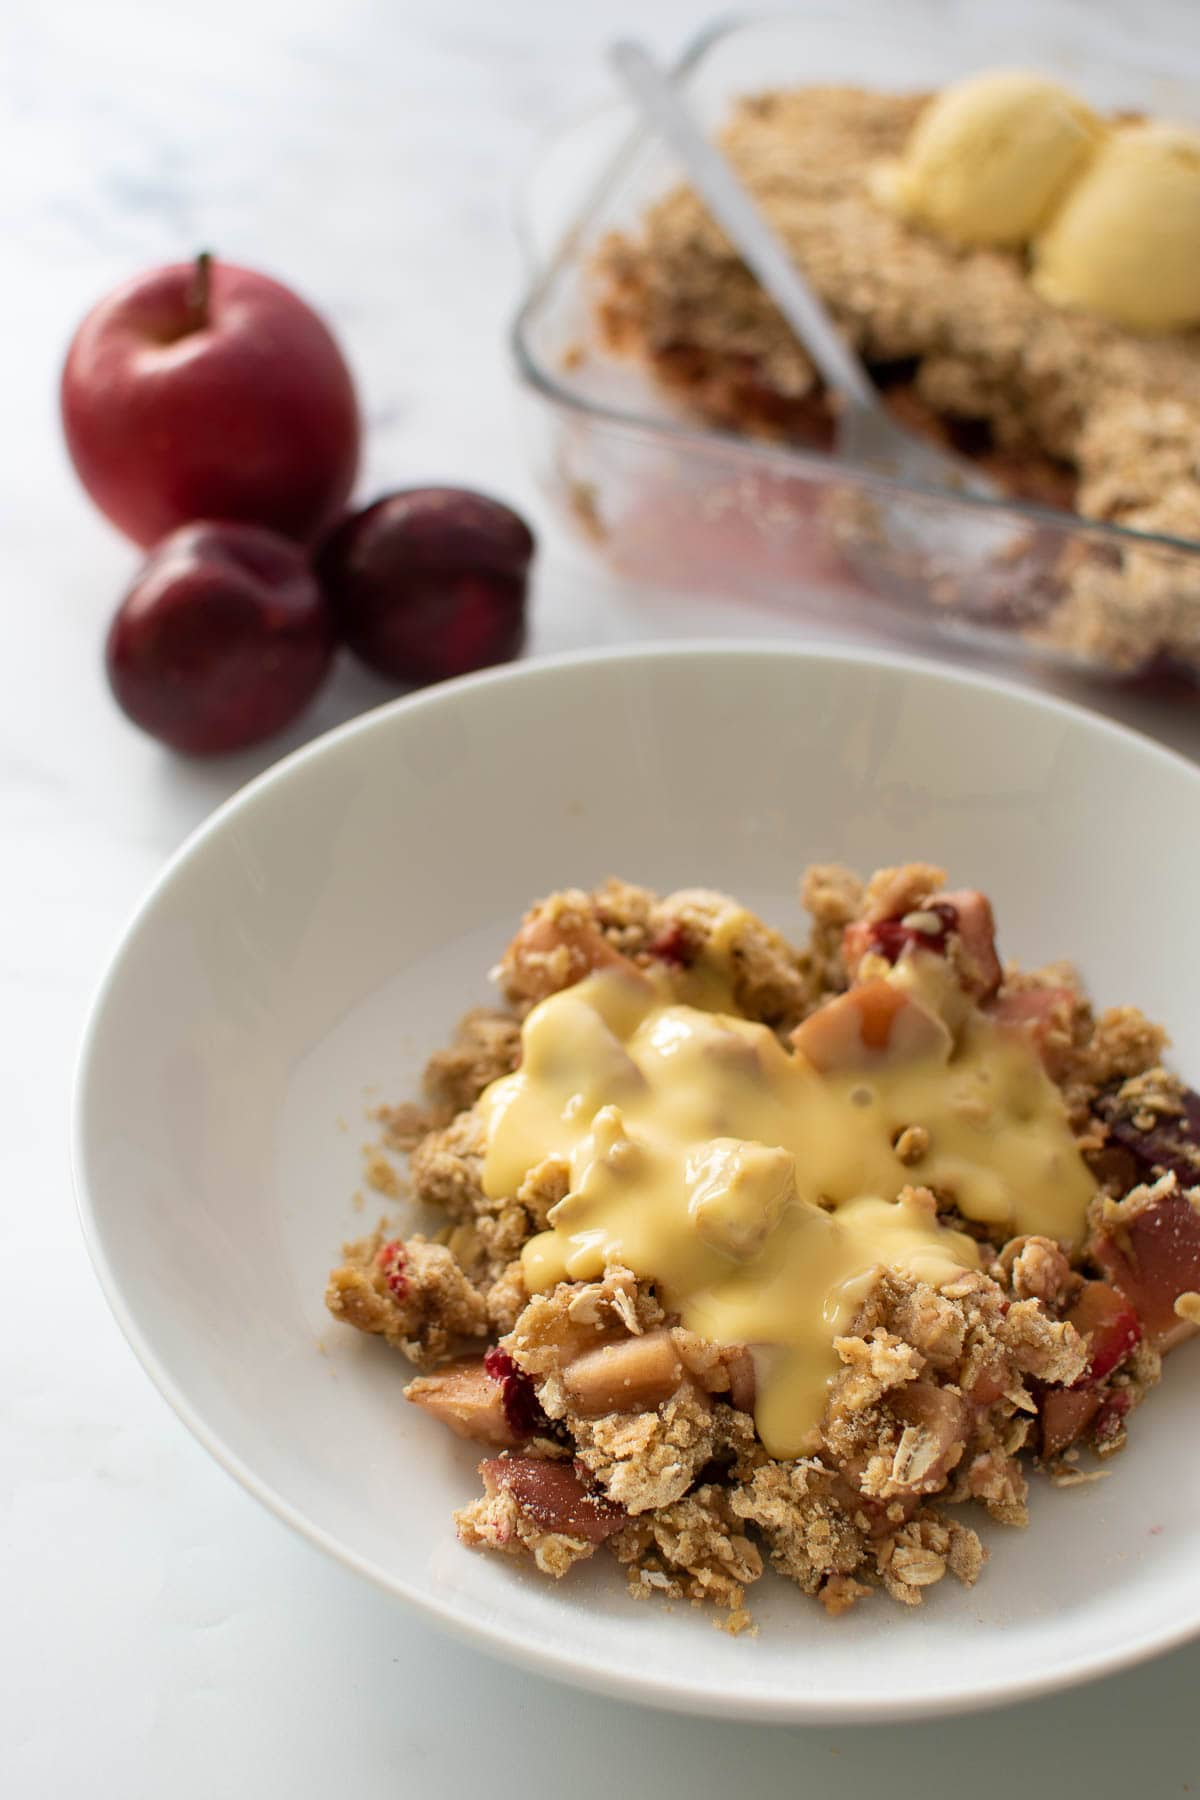 A plate with plum and apple crumble with custard.